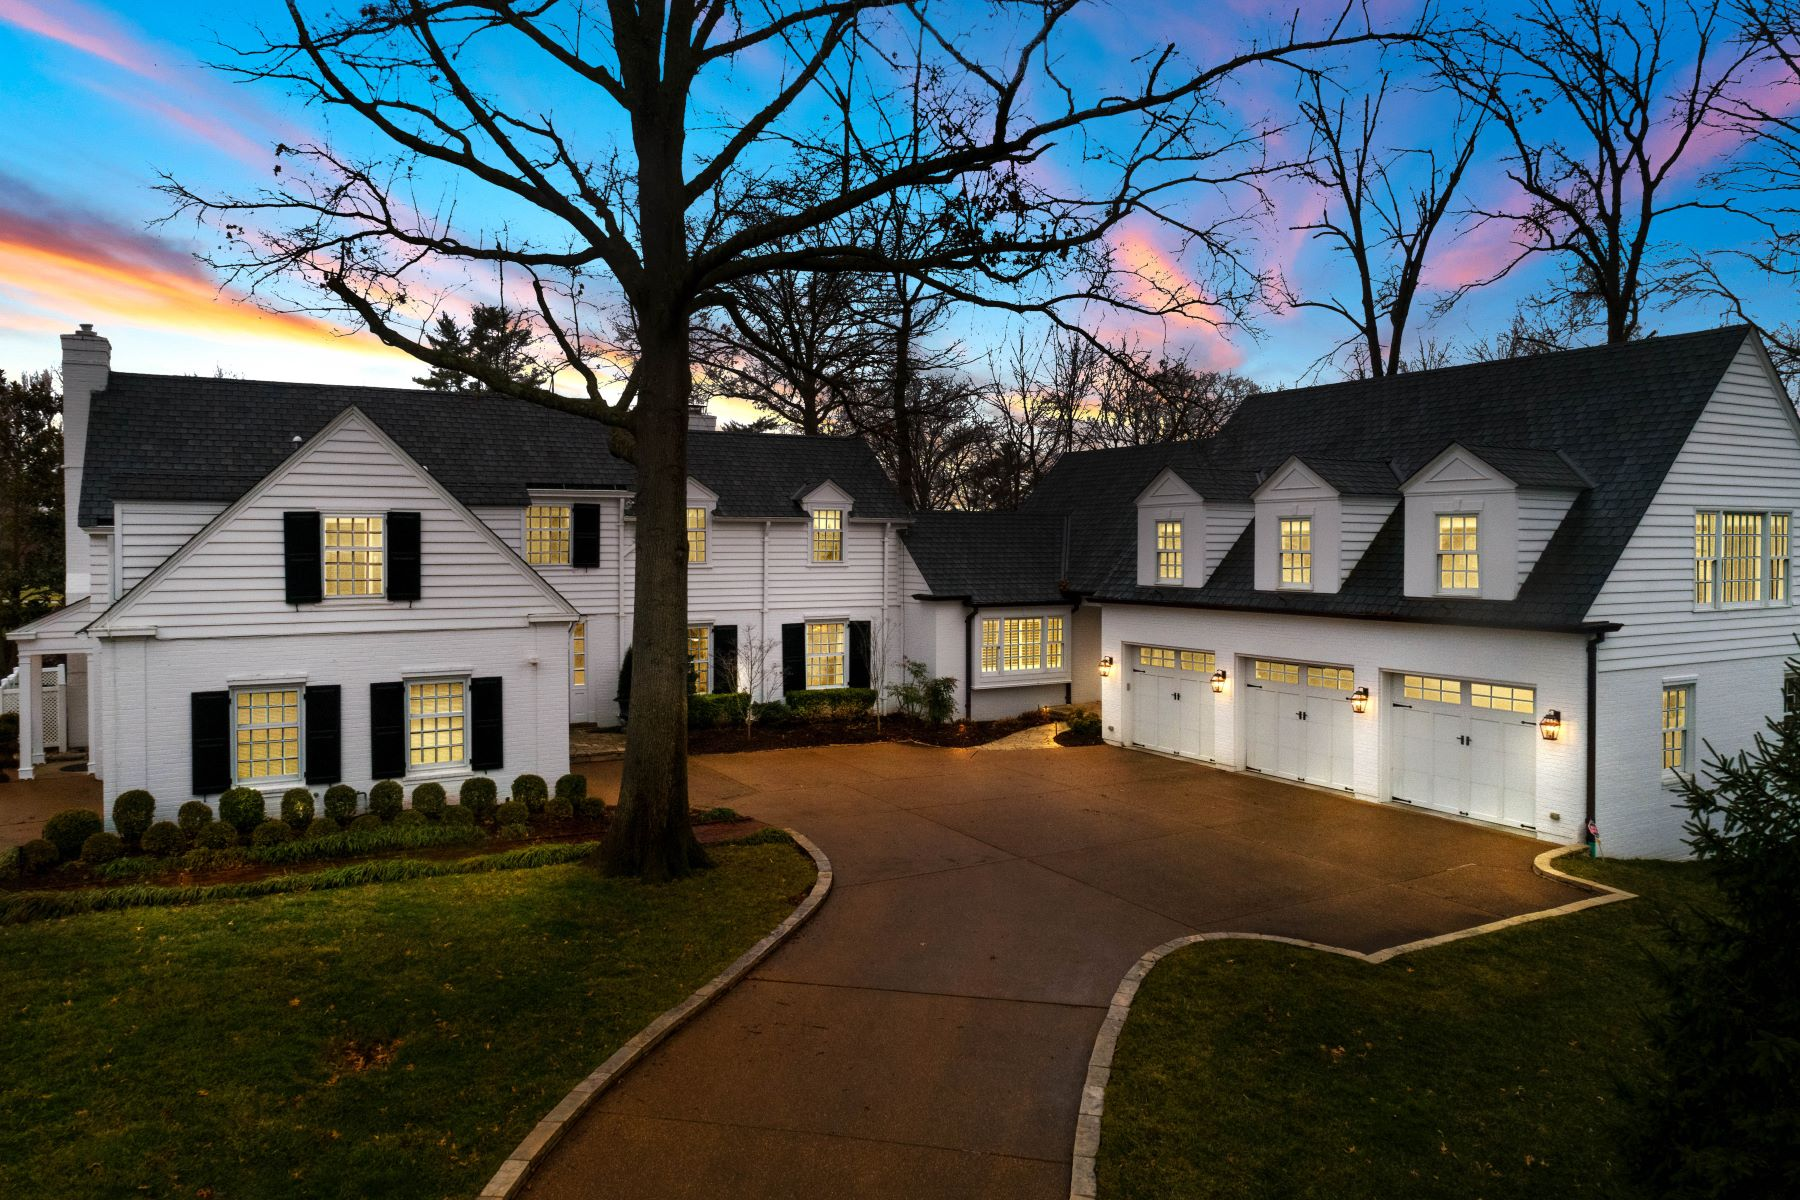 Single Family Homes for Sale at Timeless. Classic. Sophisticated. 32 Clermont Lane Ladue, Missouri 63124 United States